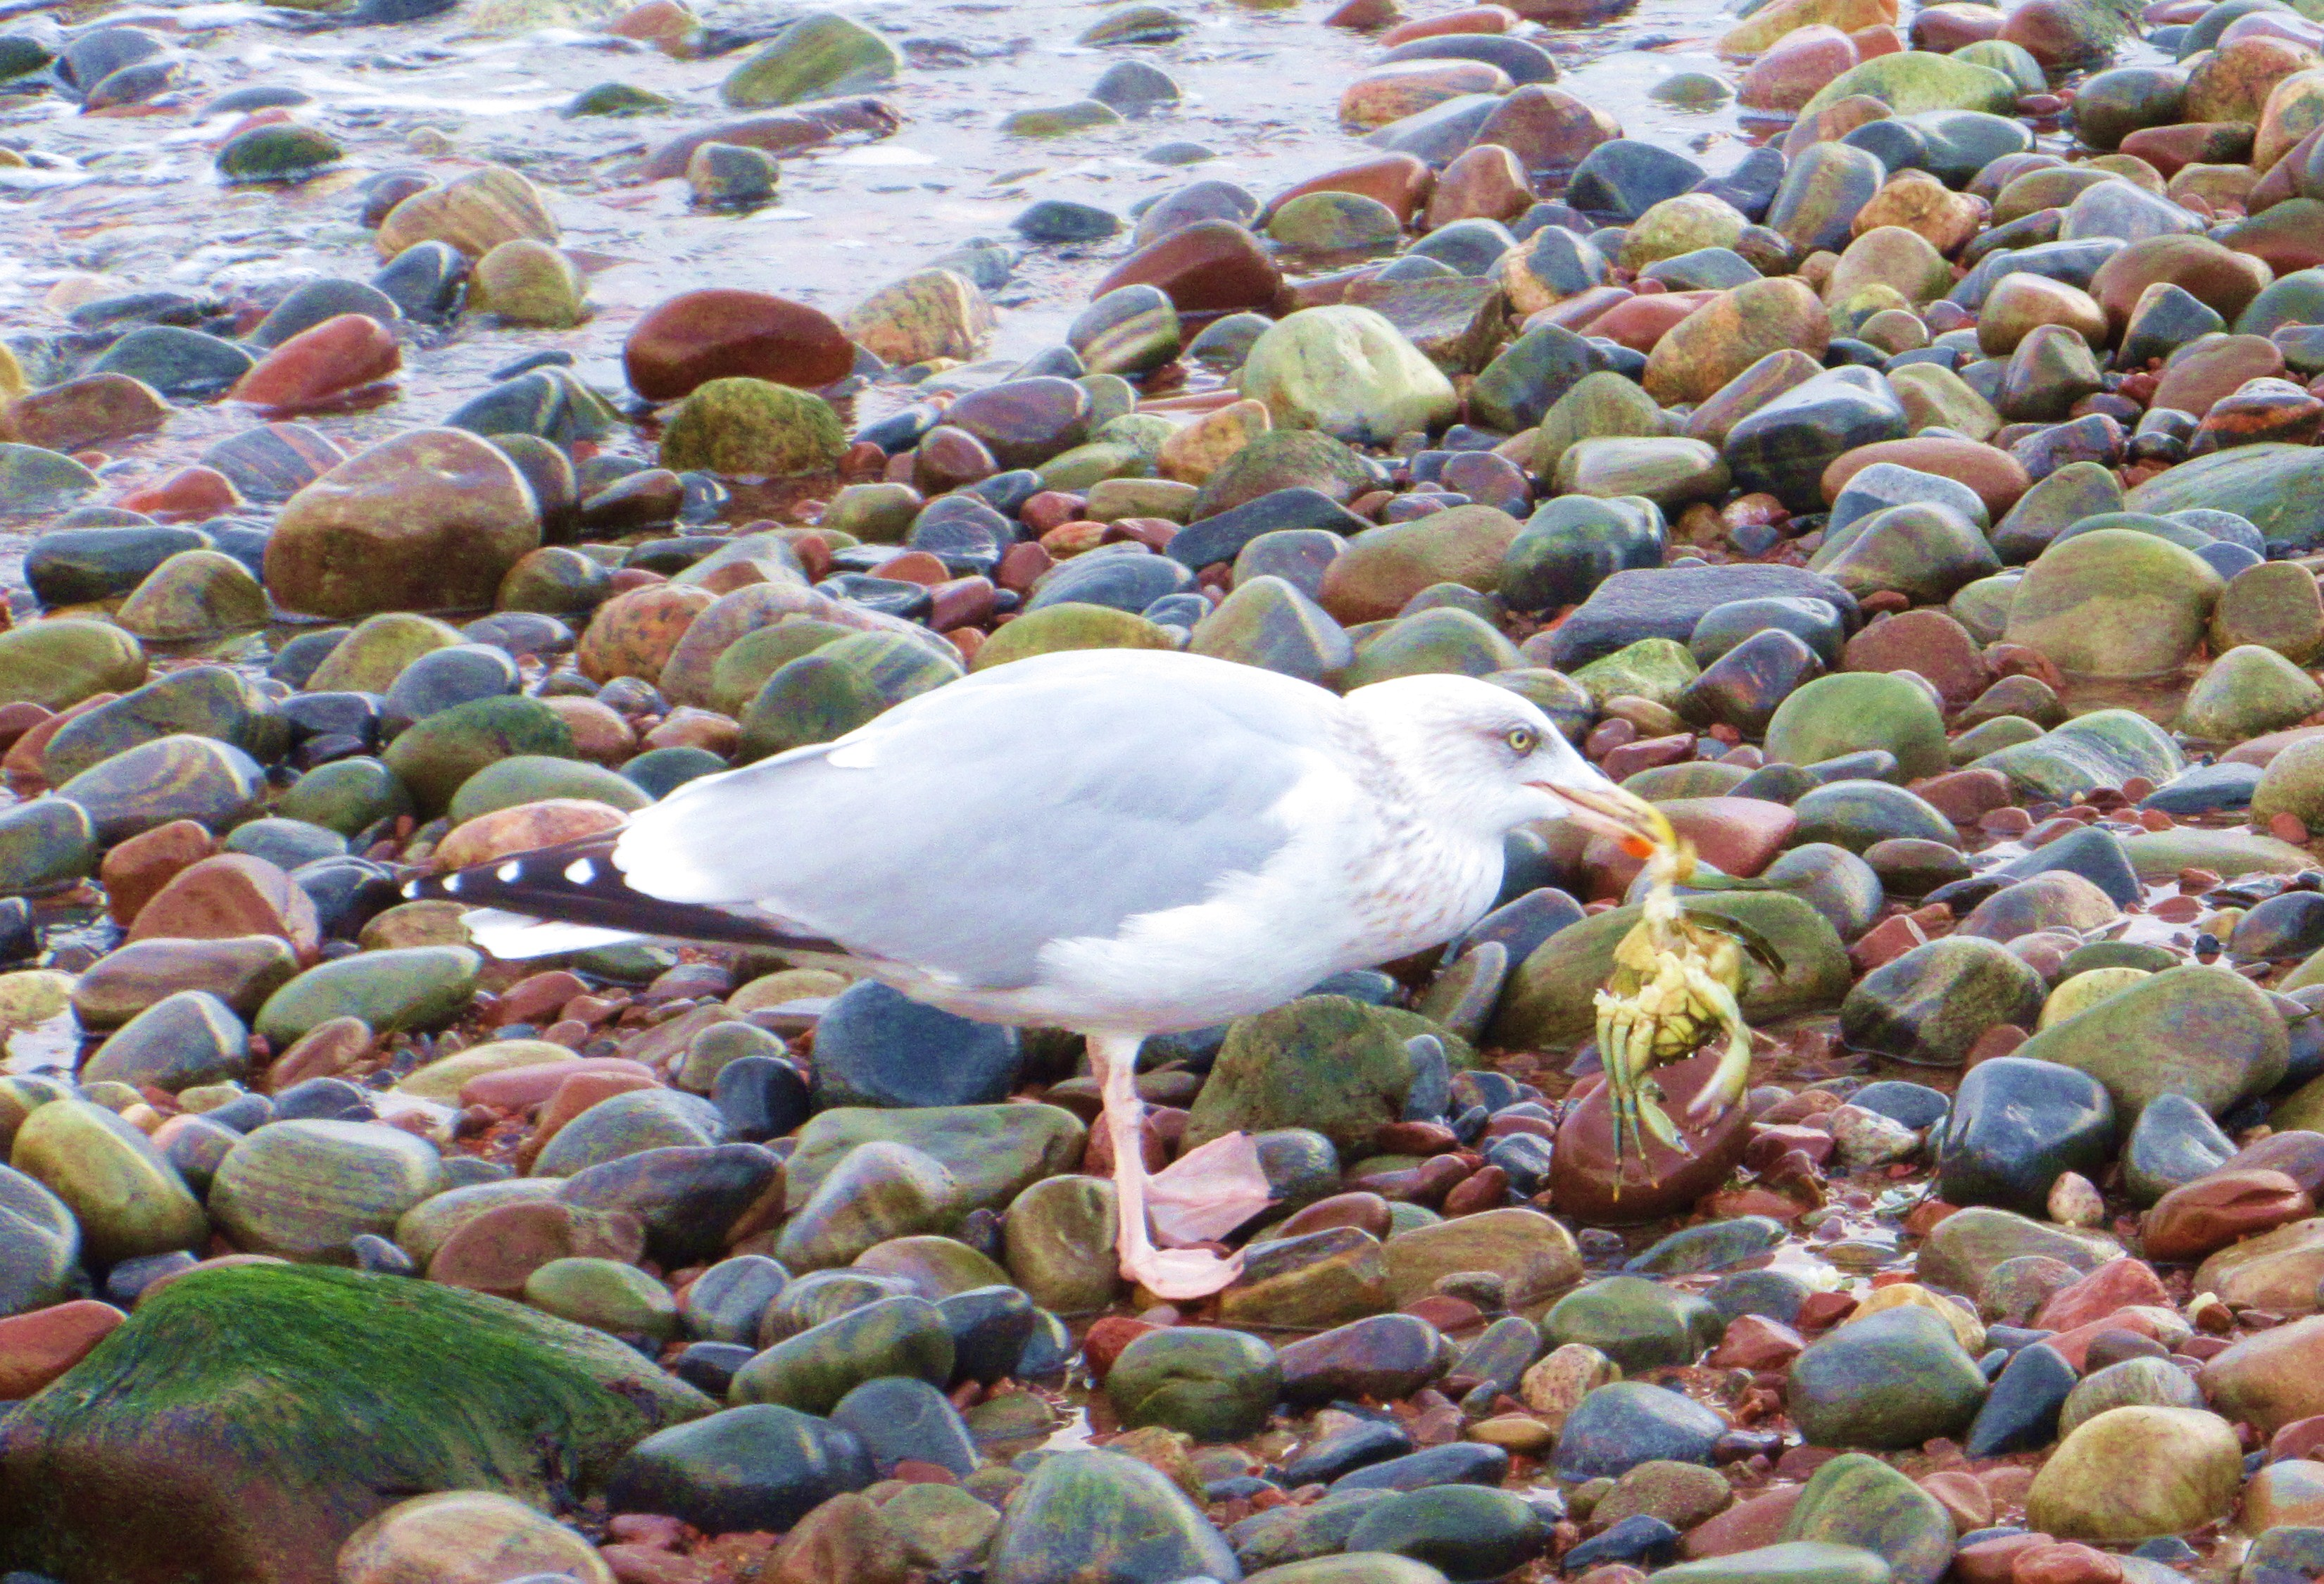 seagull eating crab